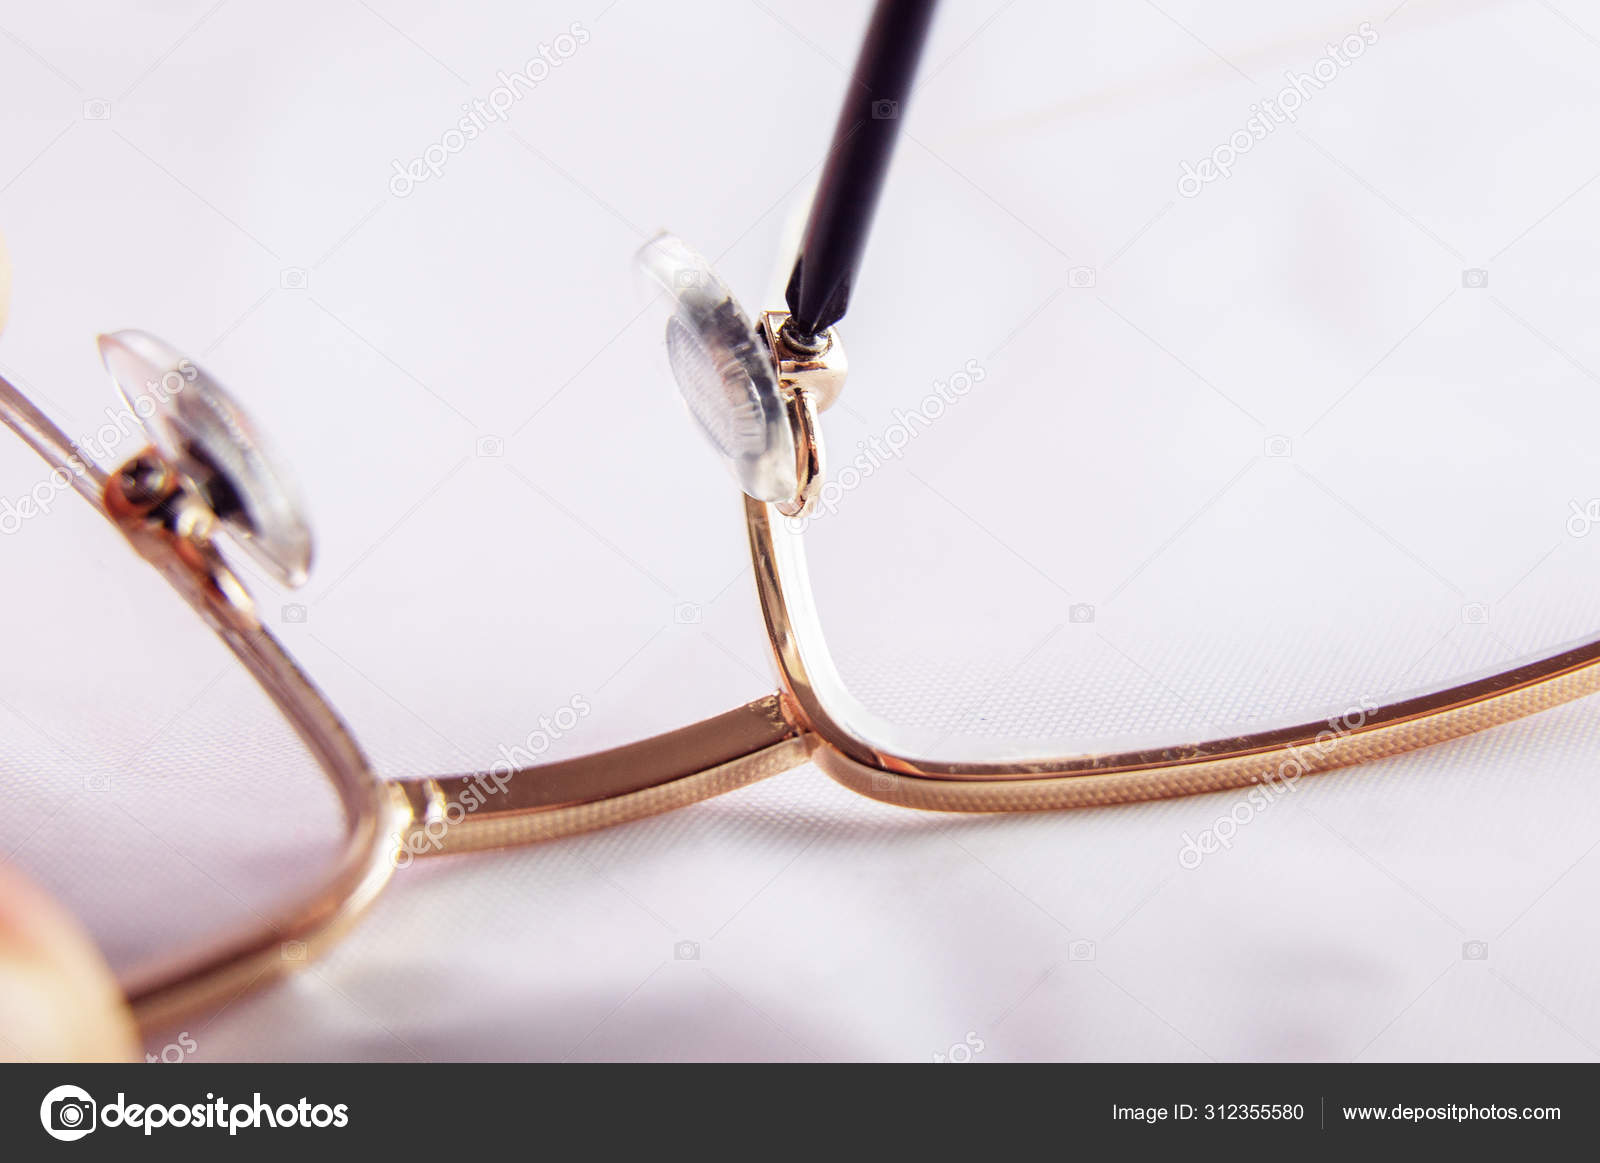 Repair Broken Glasses Work With A Screwdriver Tighten Bolts Stock Photo C Pavelgsv 312355580